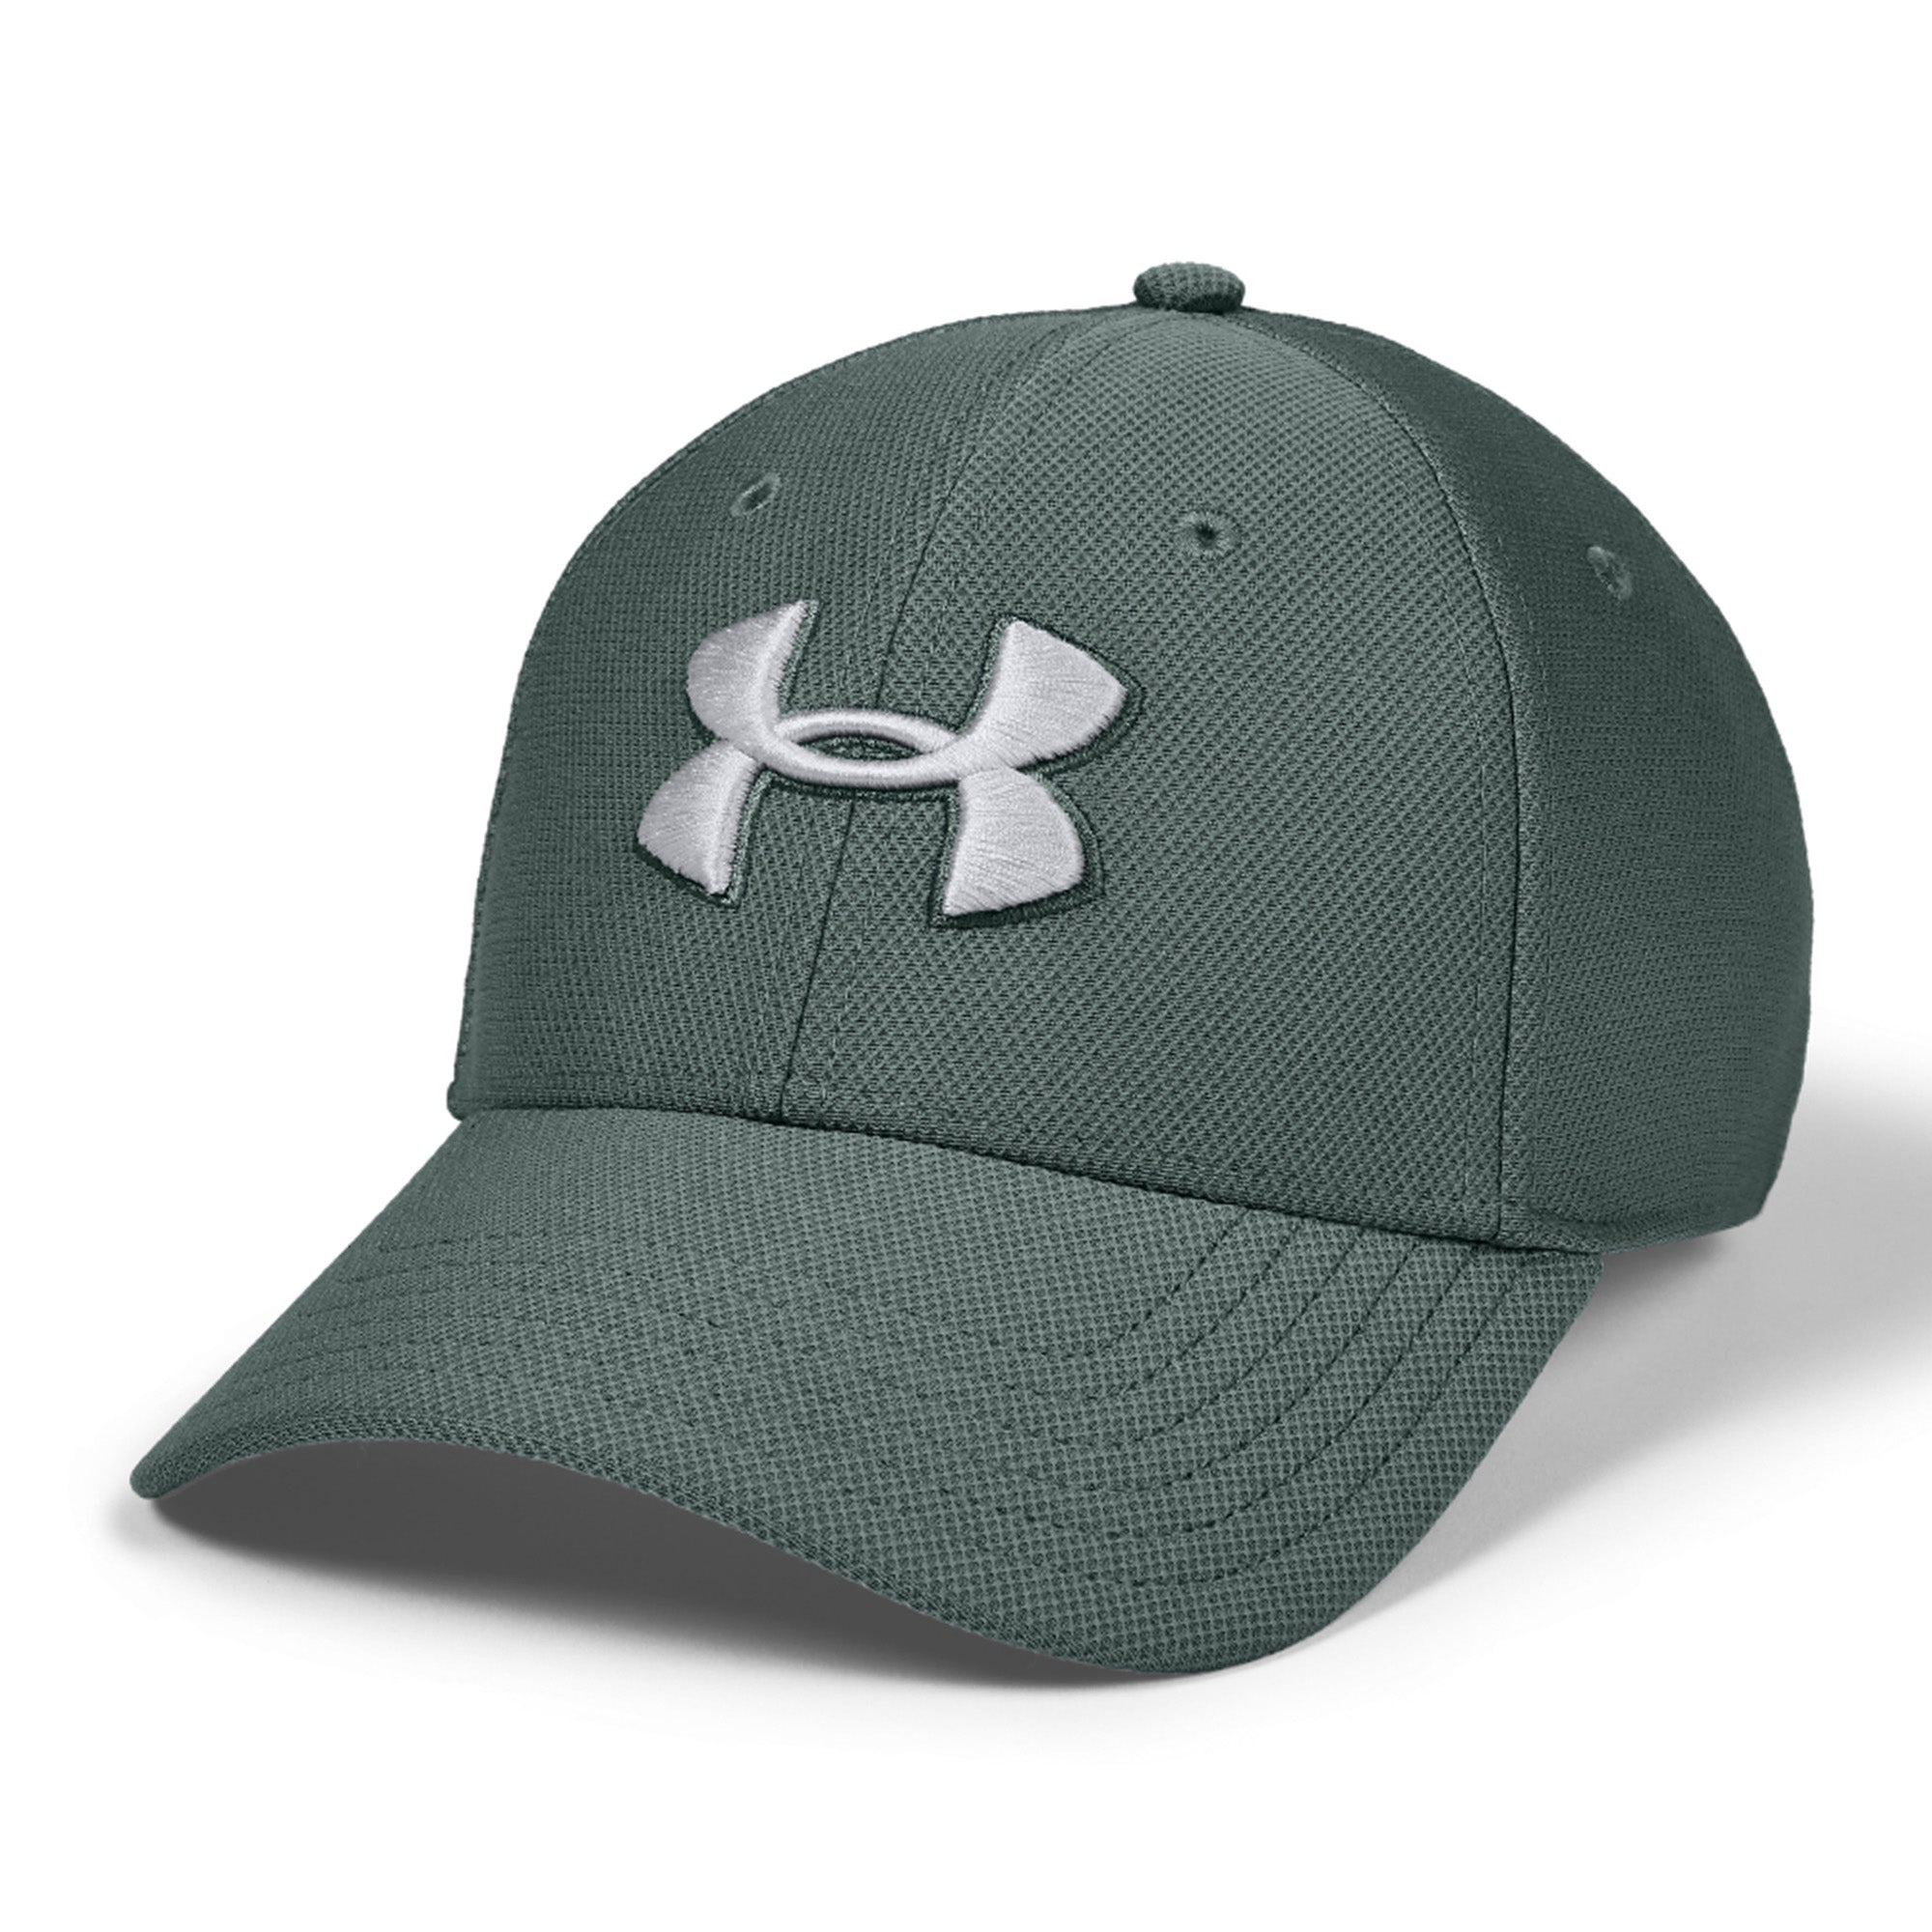 Under Armour Golf UA Blitzing 3.0 Cap